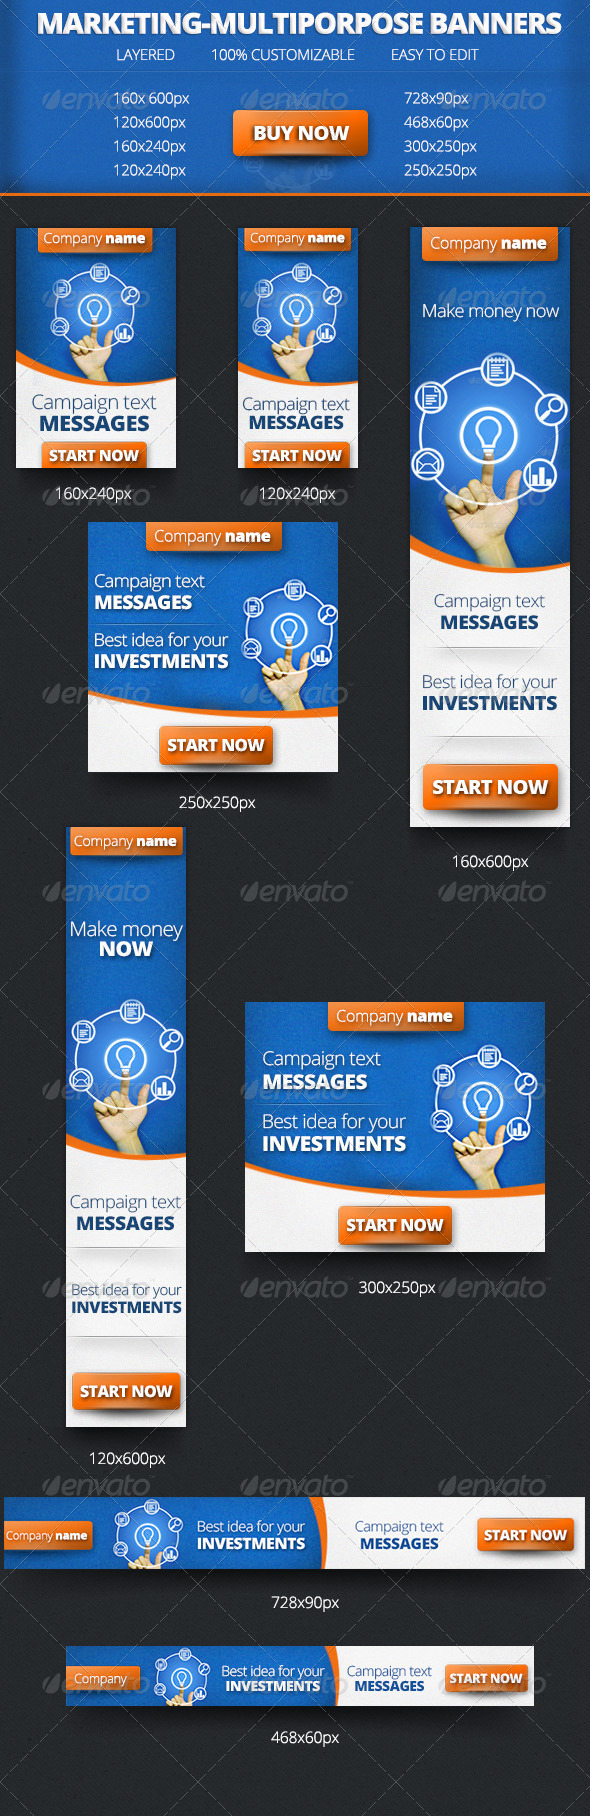 GraphicRiver Marketing-Multiporpose Banners 4672062